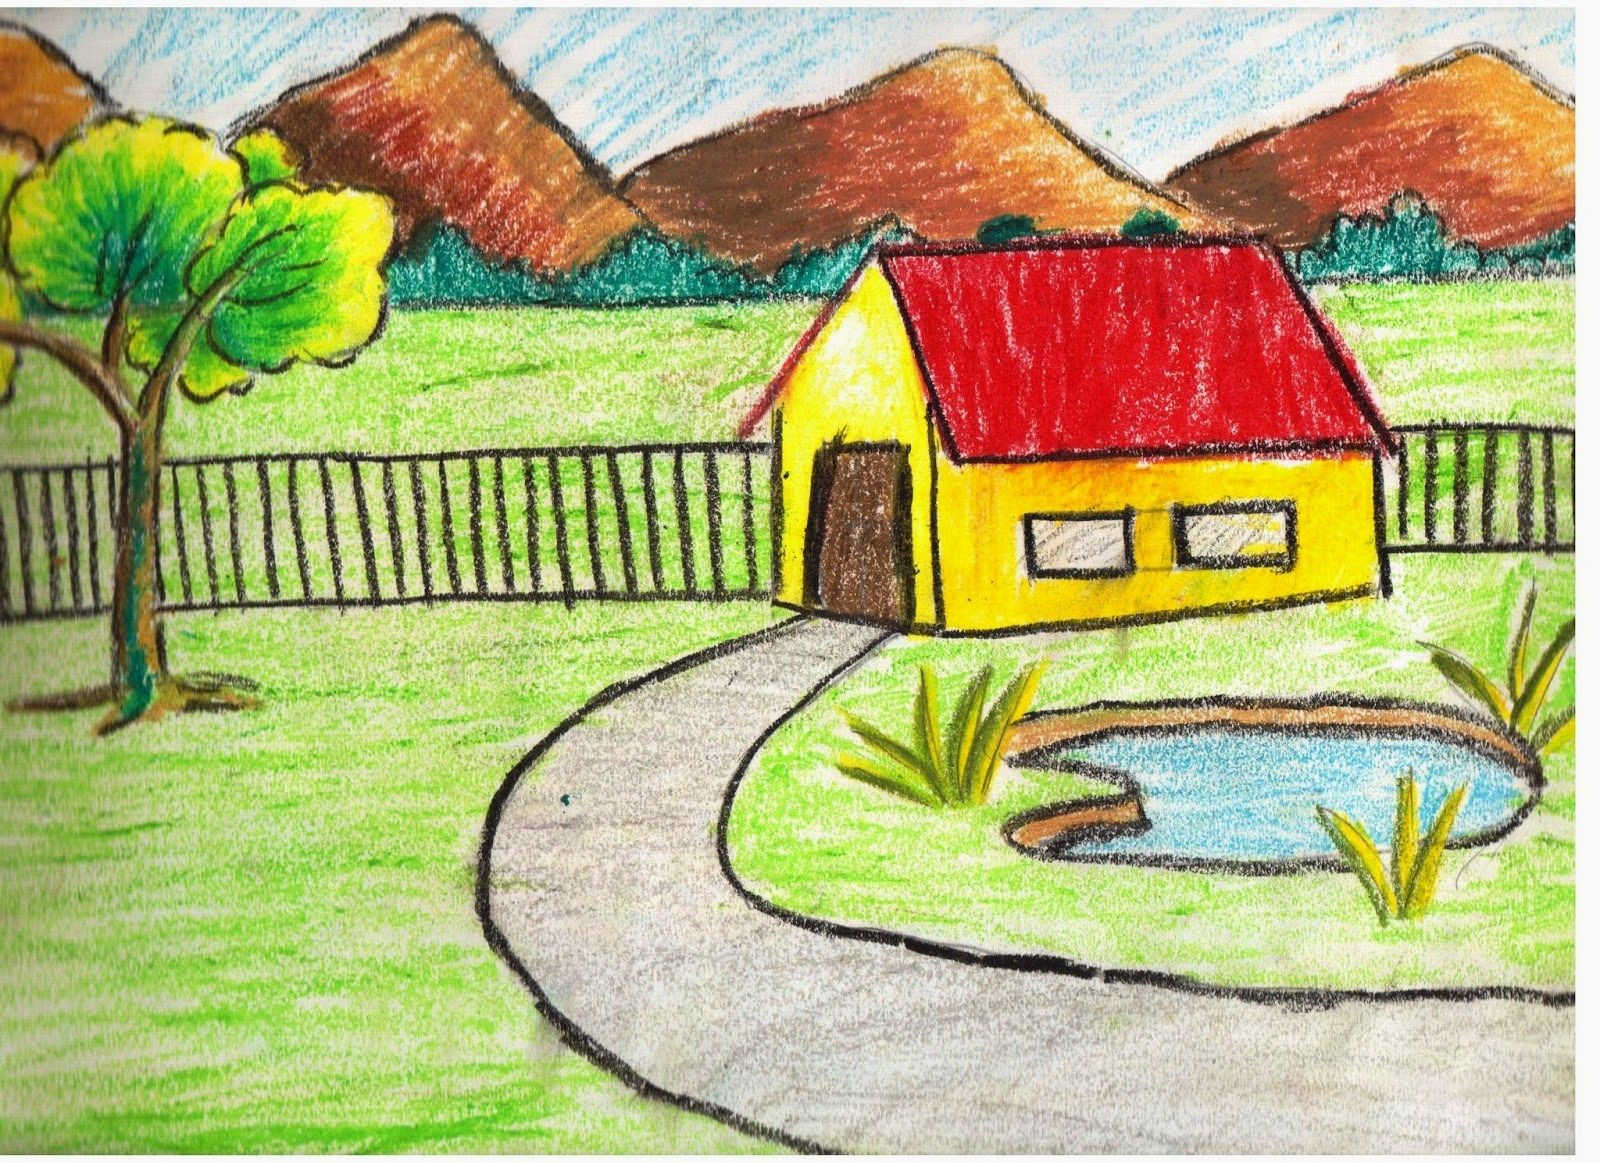 Beach Scene Kids Landscape Drawing Pictures Www Picturesboss Com Landscape Drawing Easy Landscape Drawing For Kids Scenery Drawing For Kids